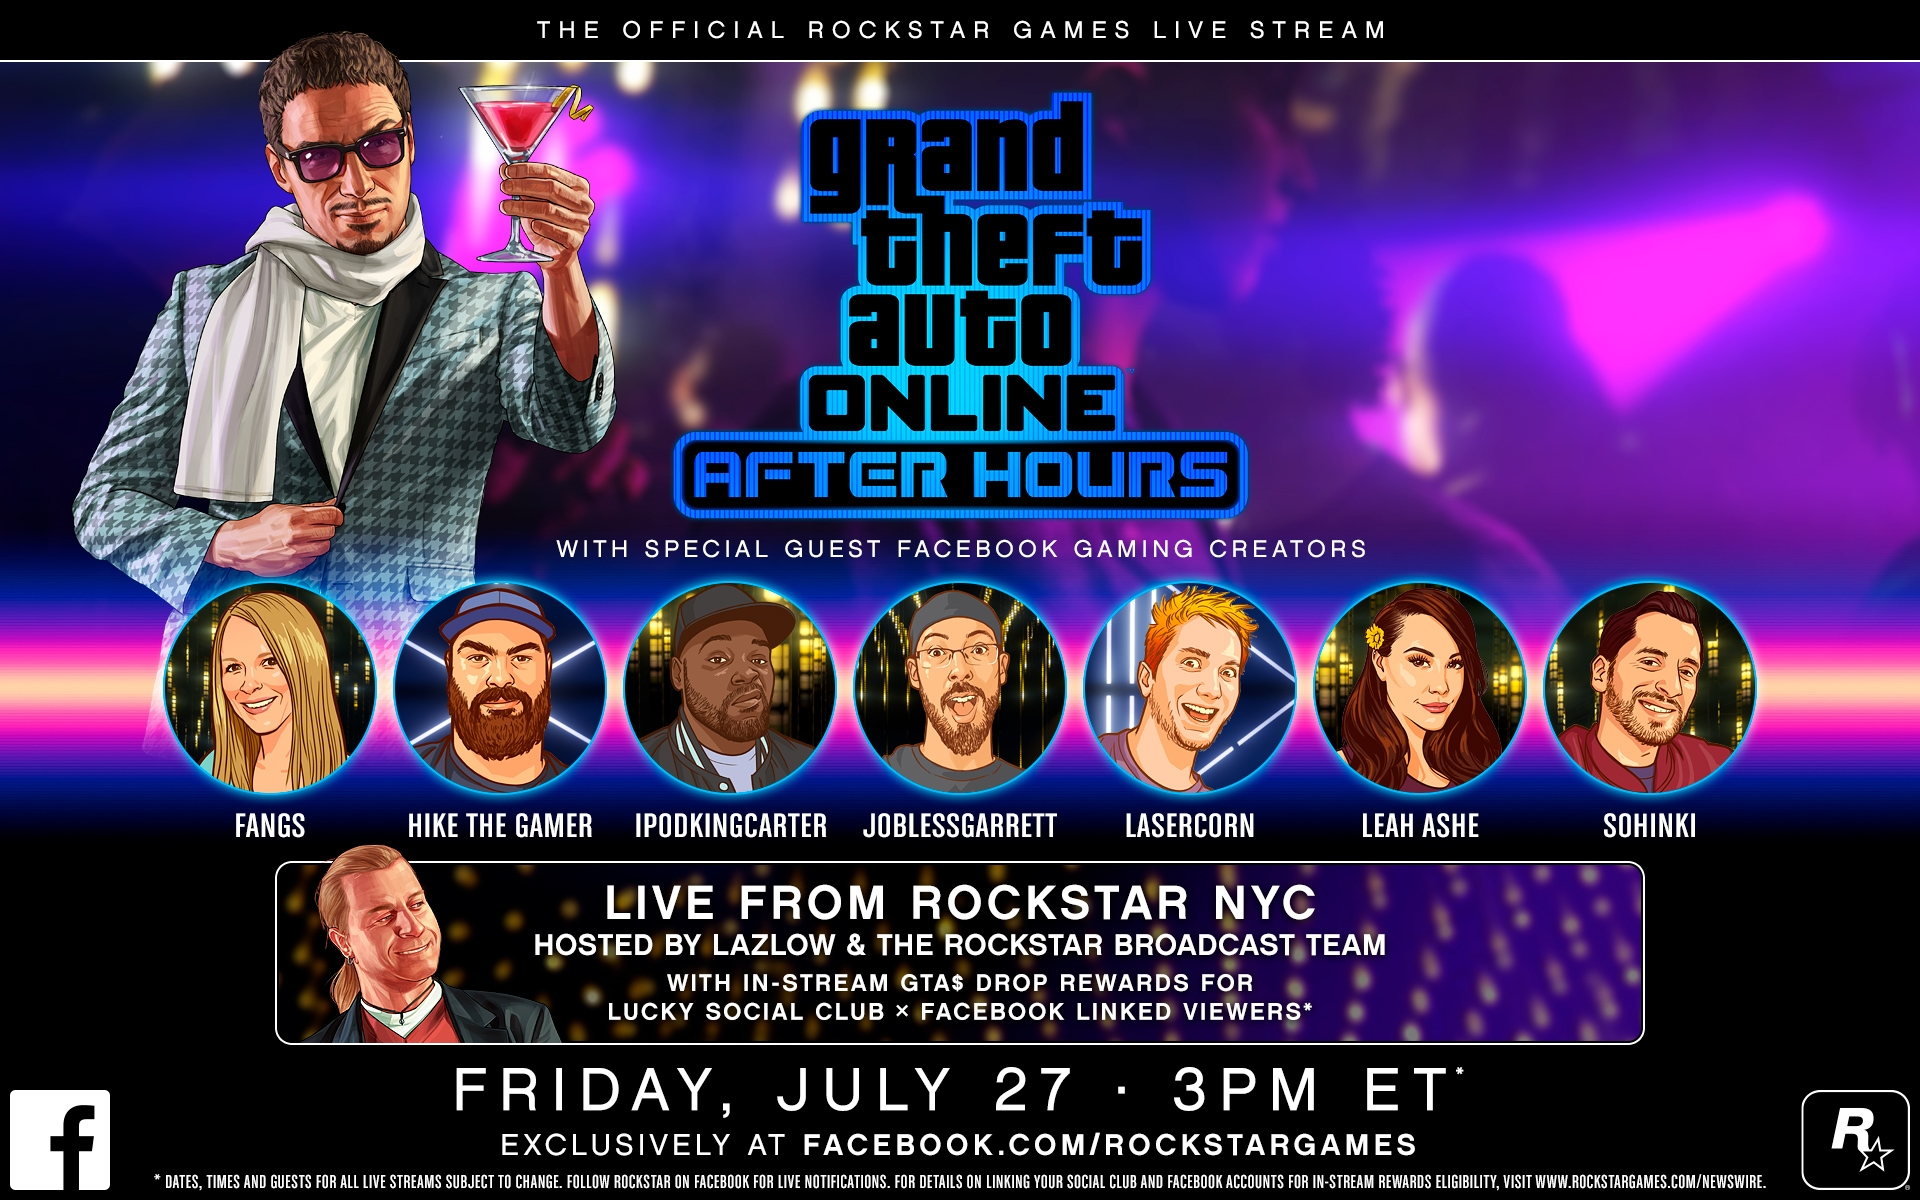 Get Ready For The Gta Online After Hours Live Streams Series Exclusively On Facebook Where Lucky Linked Viewers Will Have The Chance To Score In Stream